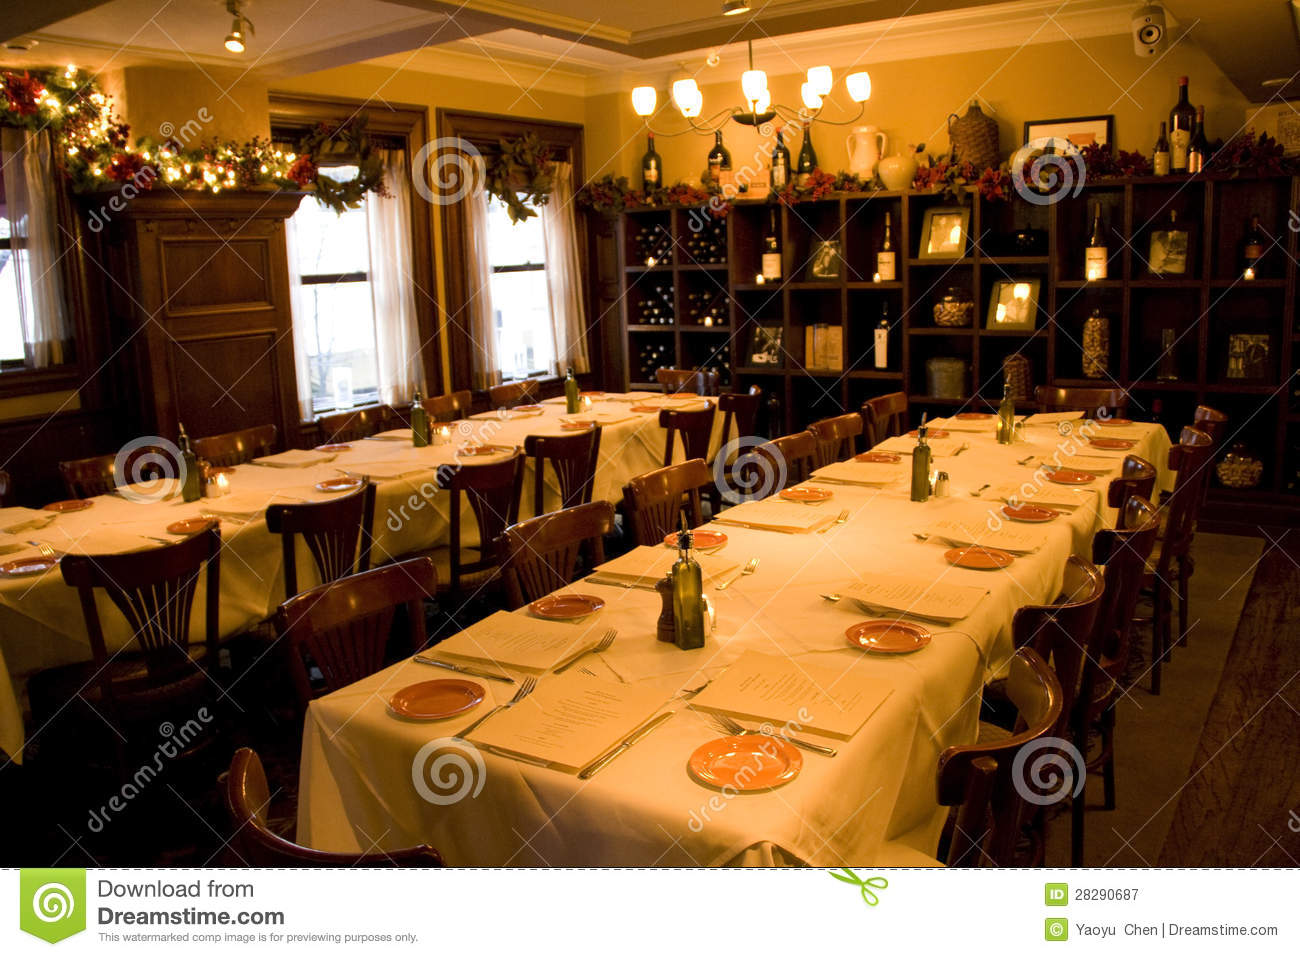 Royalty Free Stock Photo Download Vintage Bar Restaurant Private Party Room